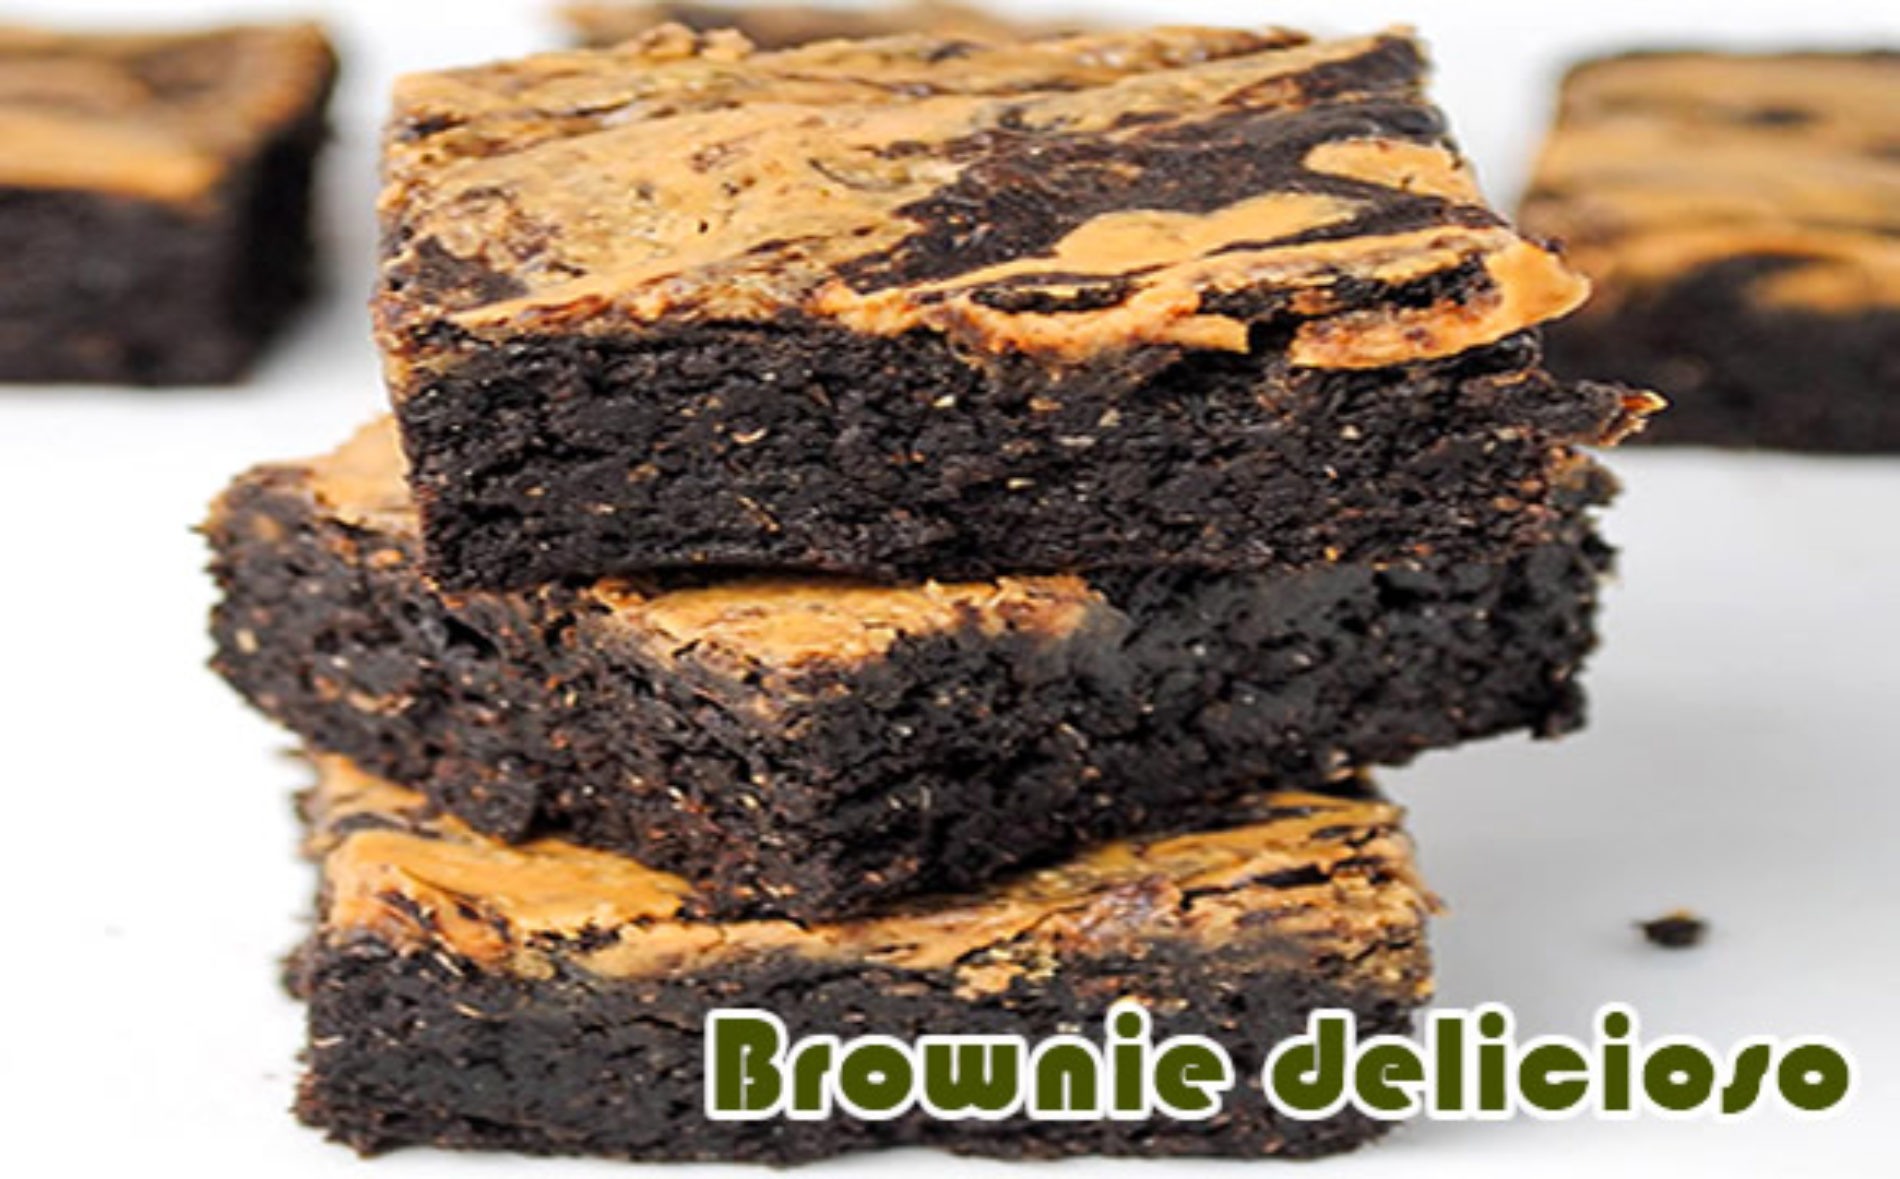 Brownie com manteiga de amendoim e chocolate